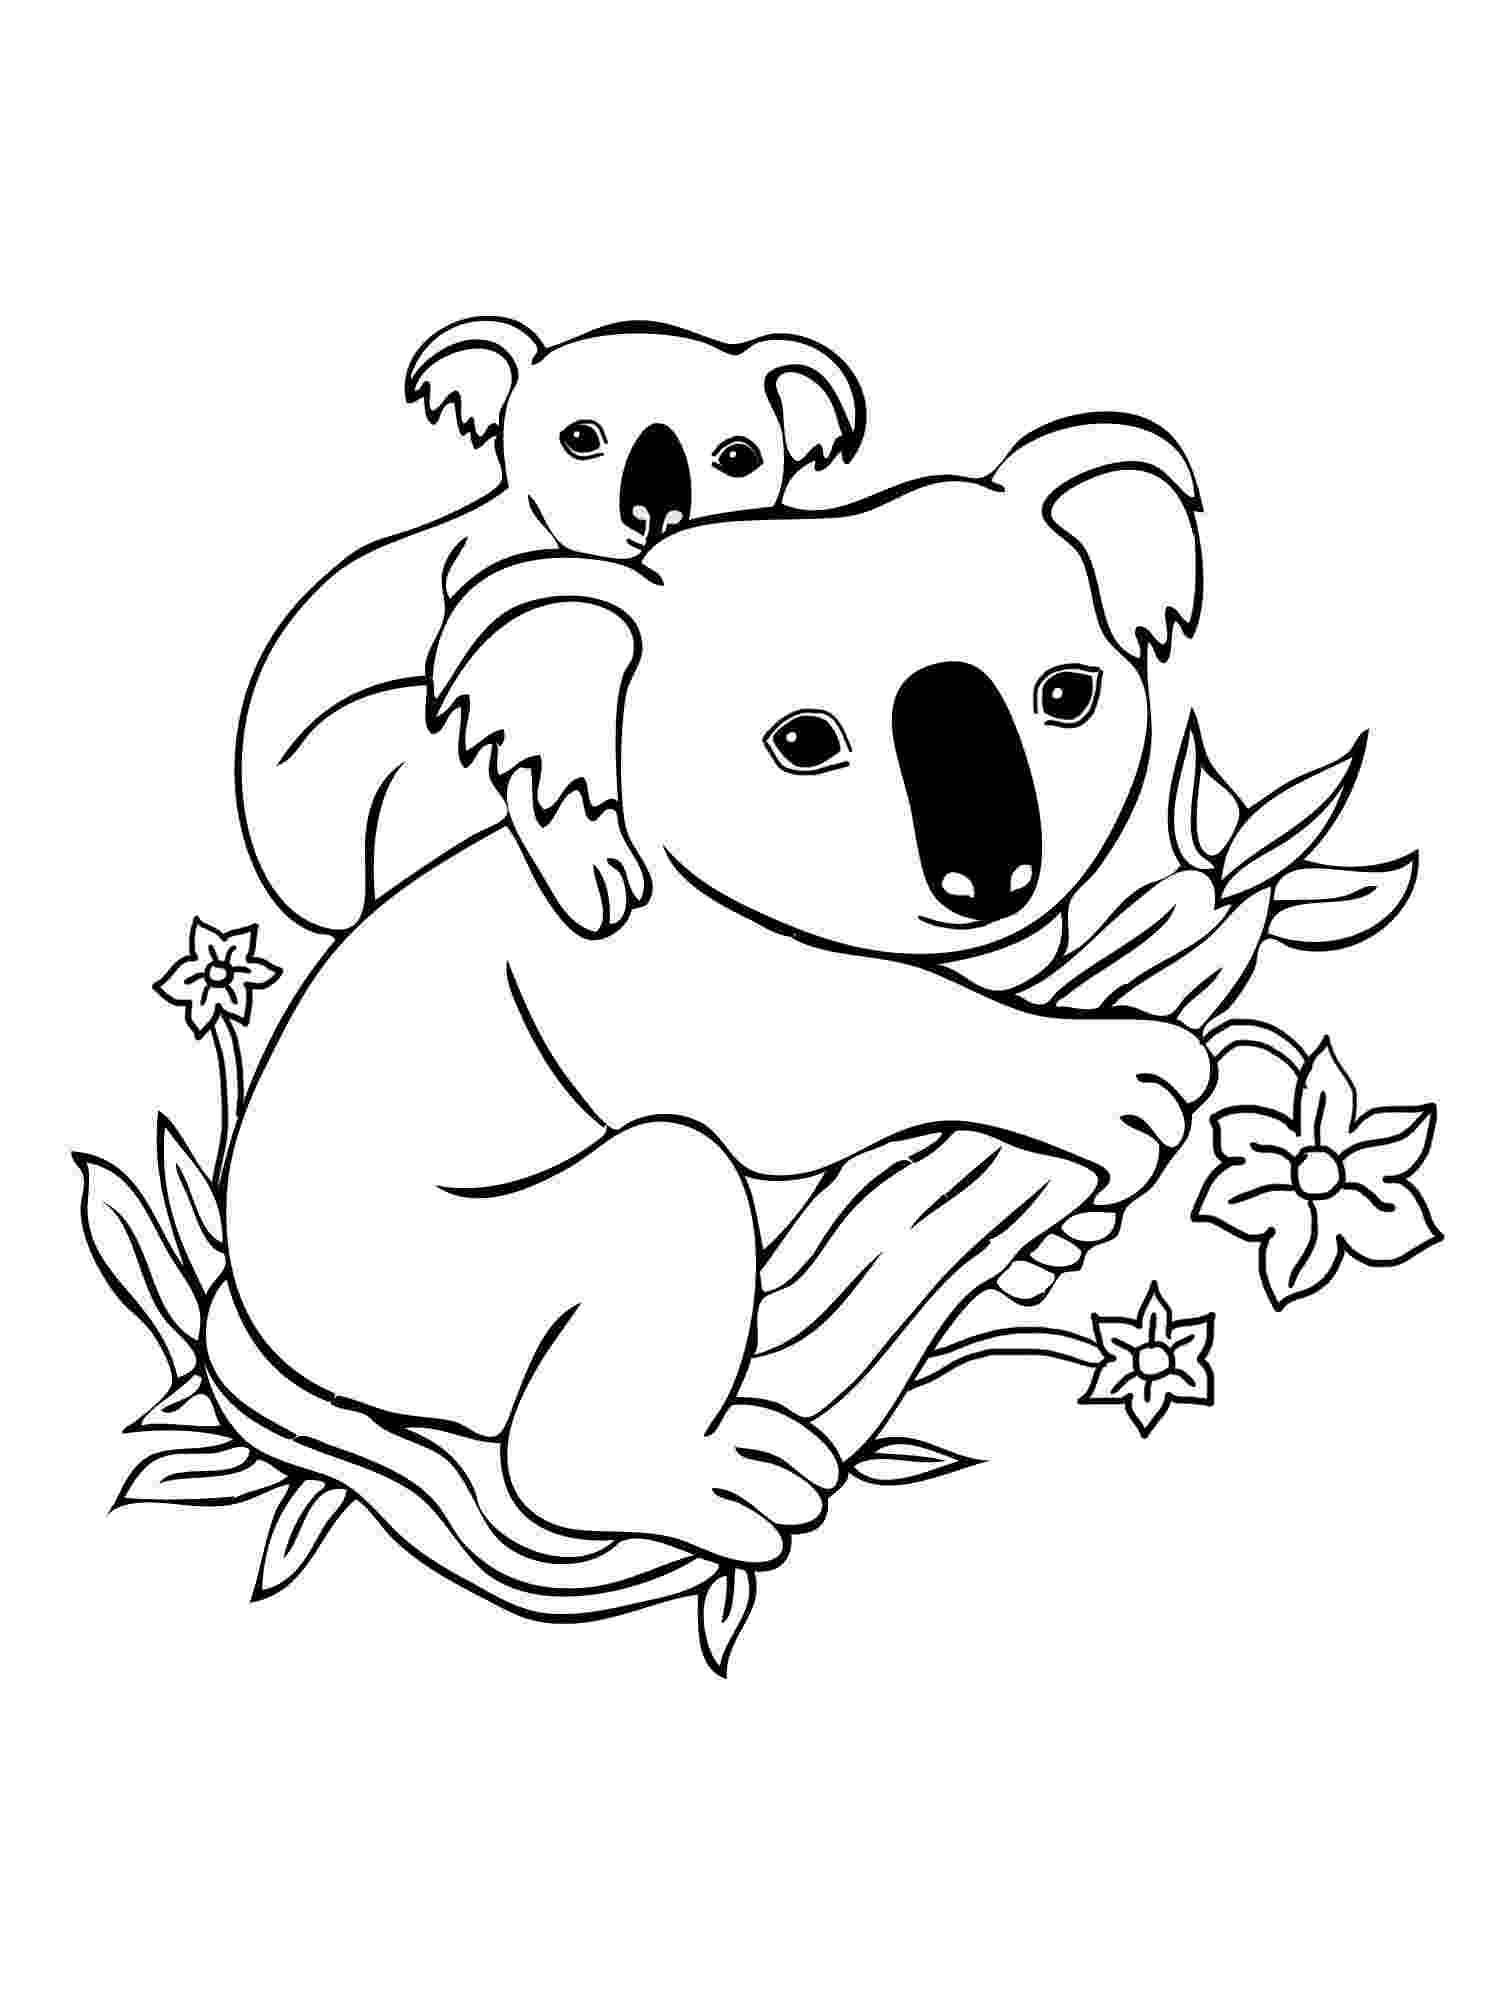 koala color koala coloring page super simple koala color